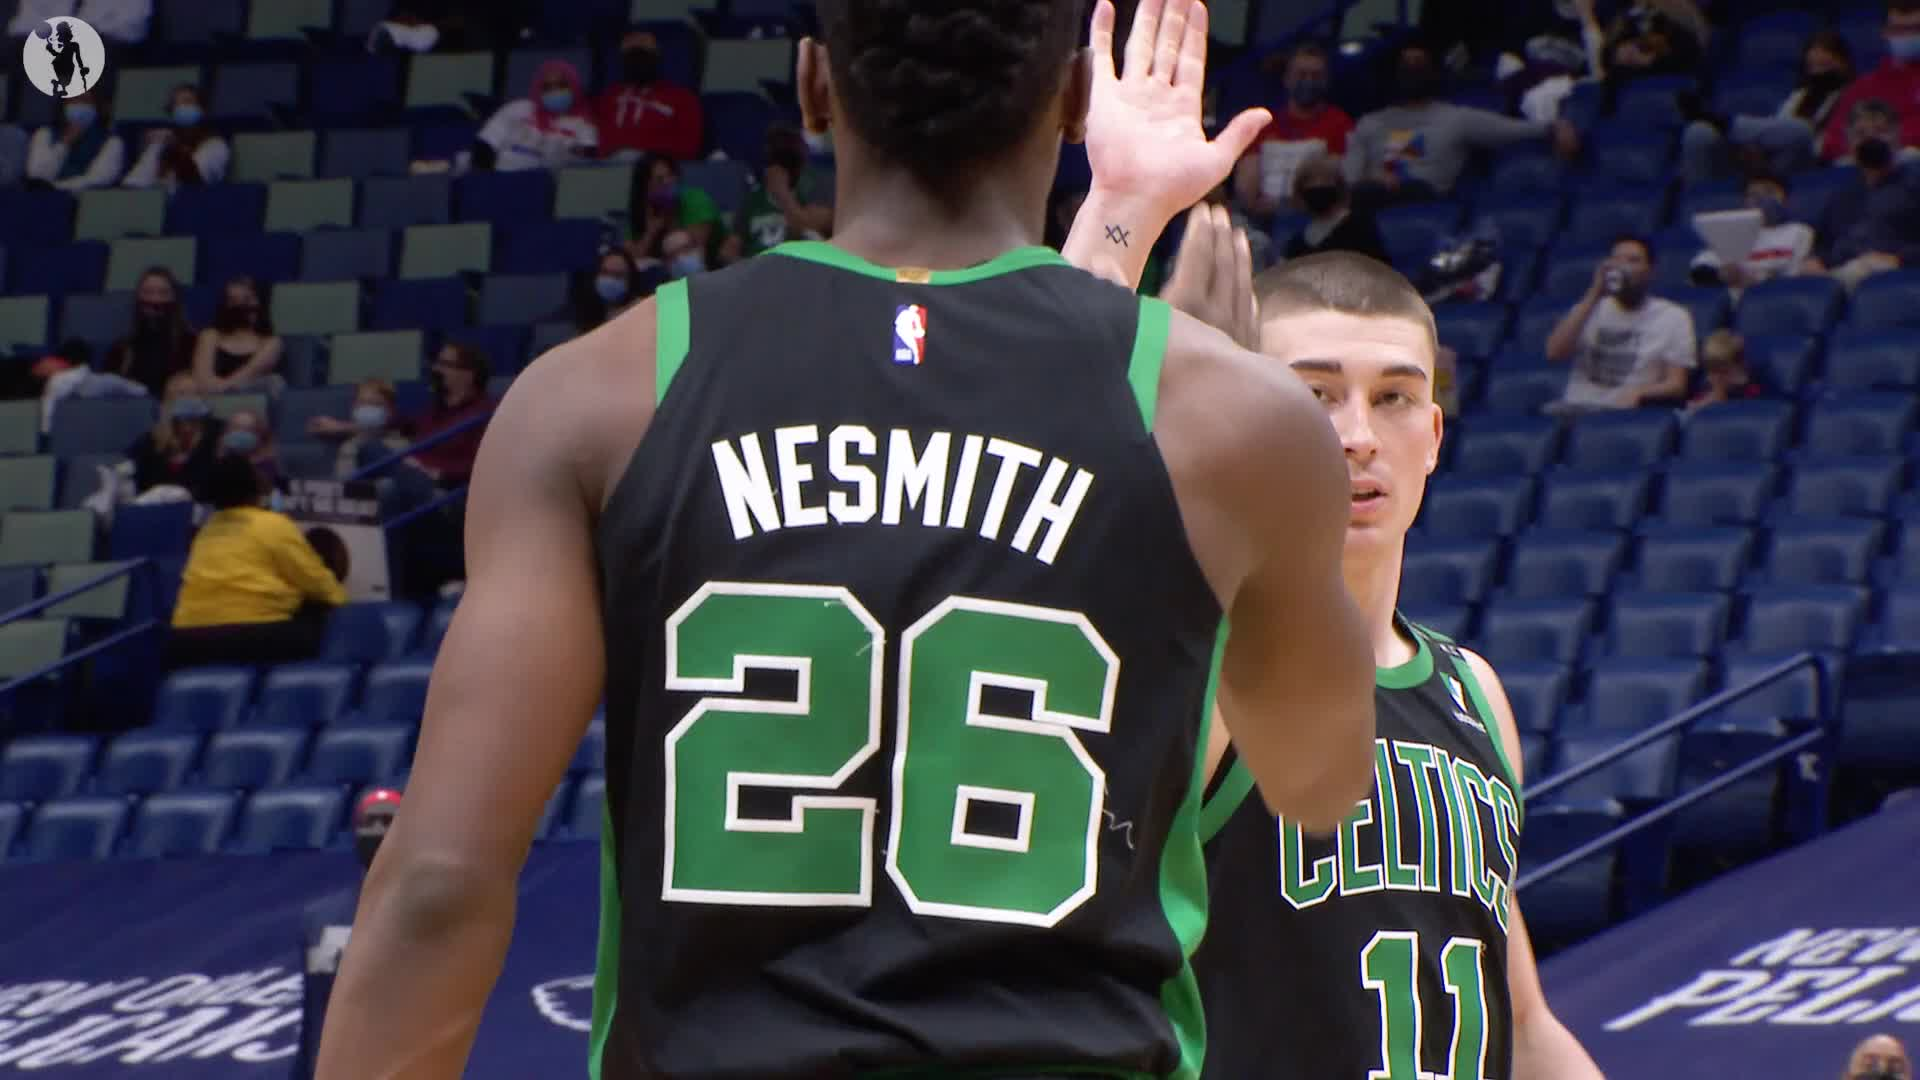 Aaron Nesmith & Payton Pritchard Wrap Up Their Regular Season | Lucky Rooks presented by New Balance